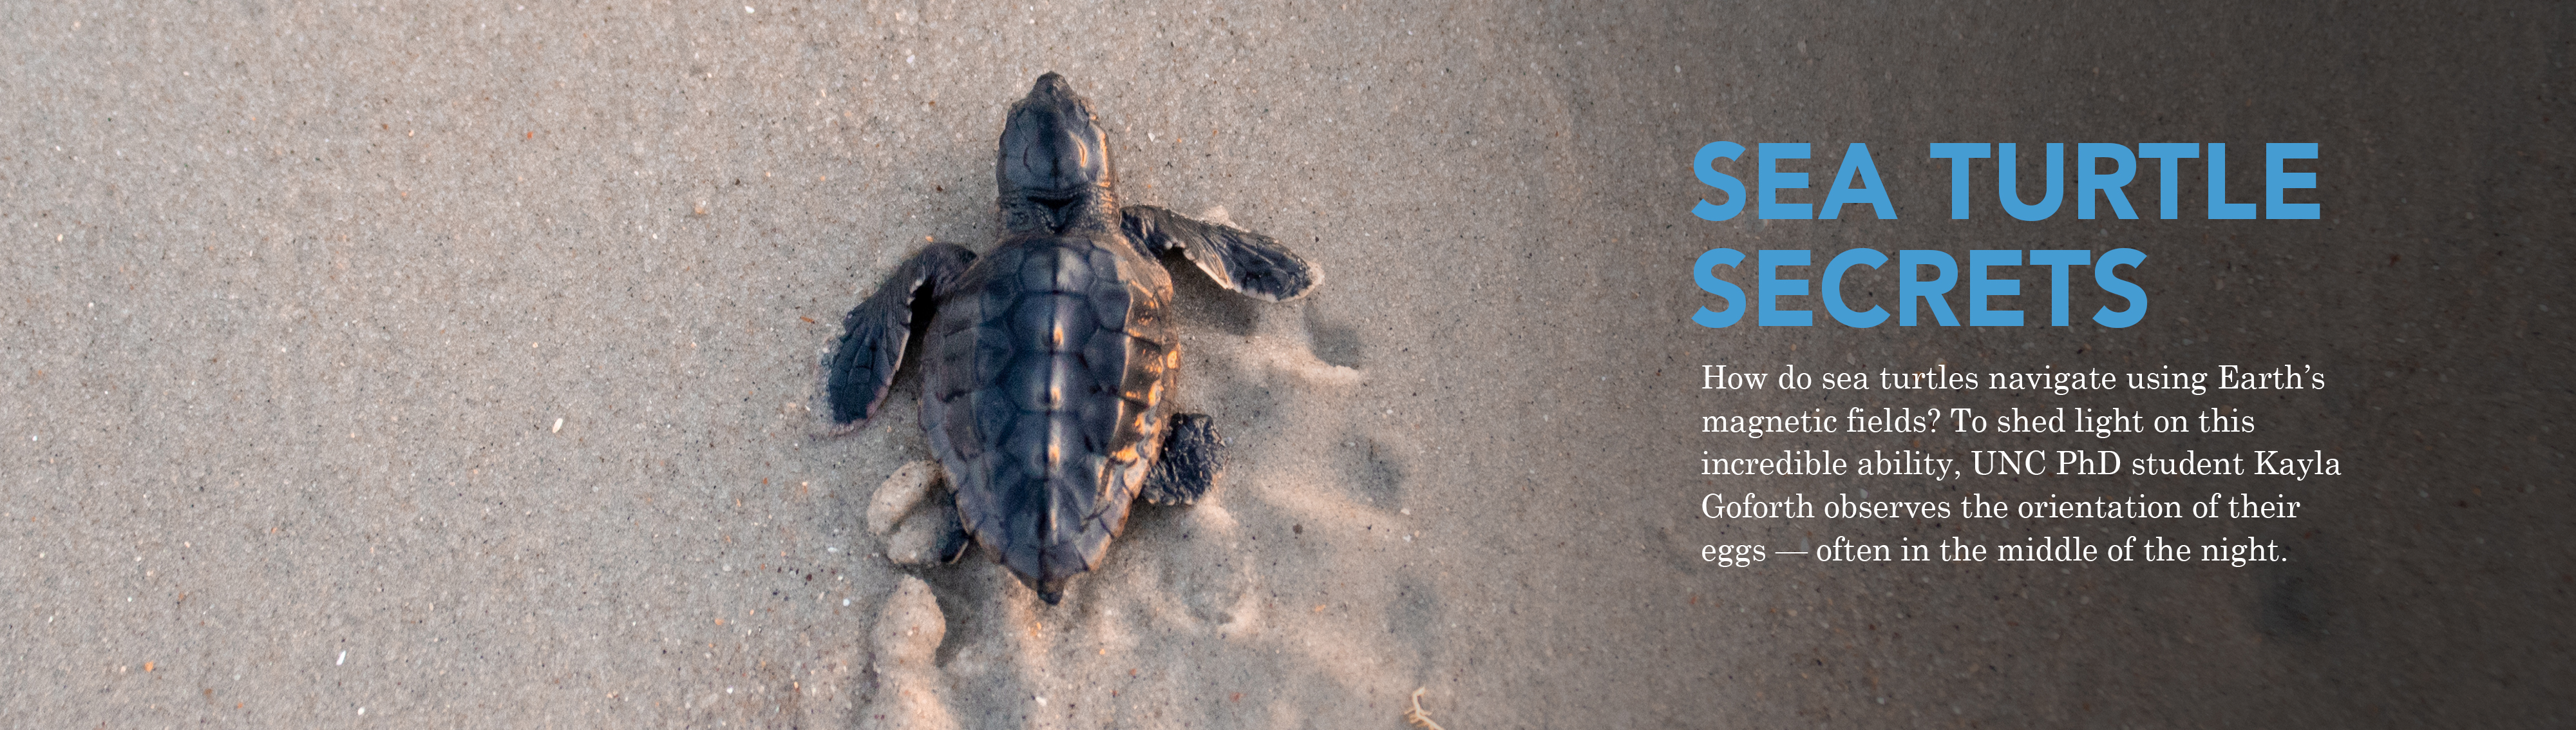 Sea Turtle Secrets: How do sea turtles navigate using Earth's magnetic fields? To shed light on this incredible ability, UNC PhD Student Kayla Goforth observes the orientation of their eggs — often in the middle of the night.